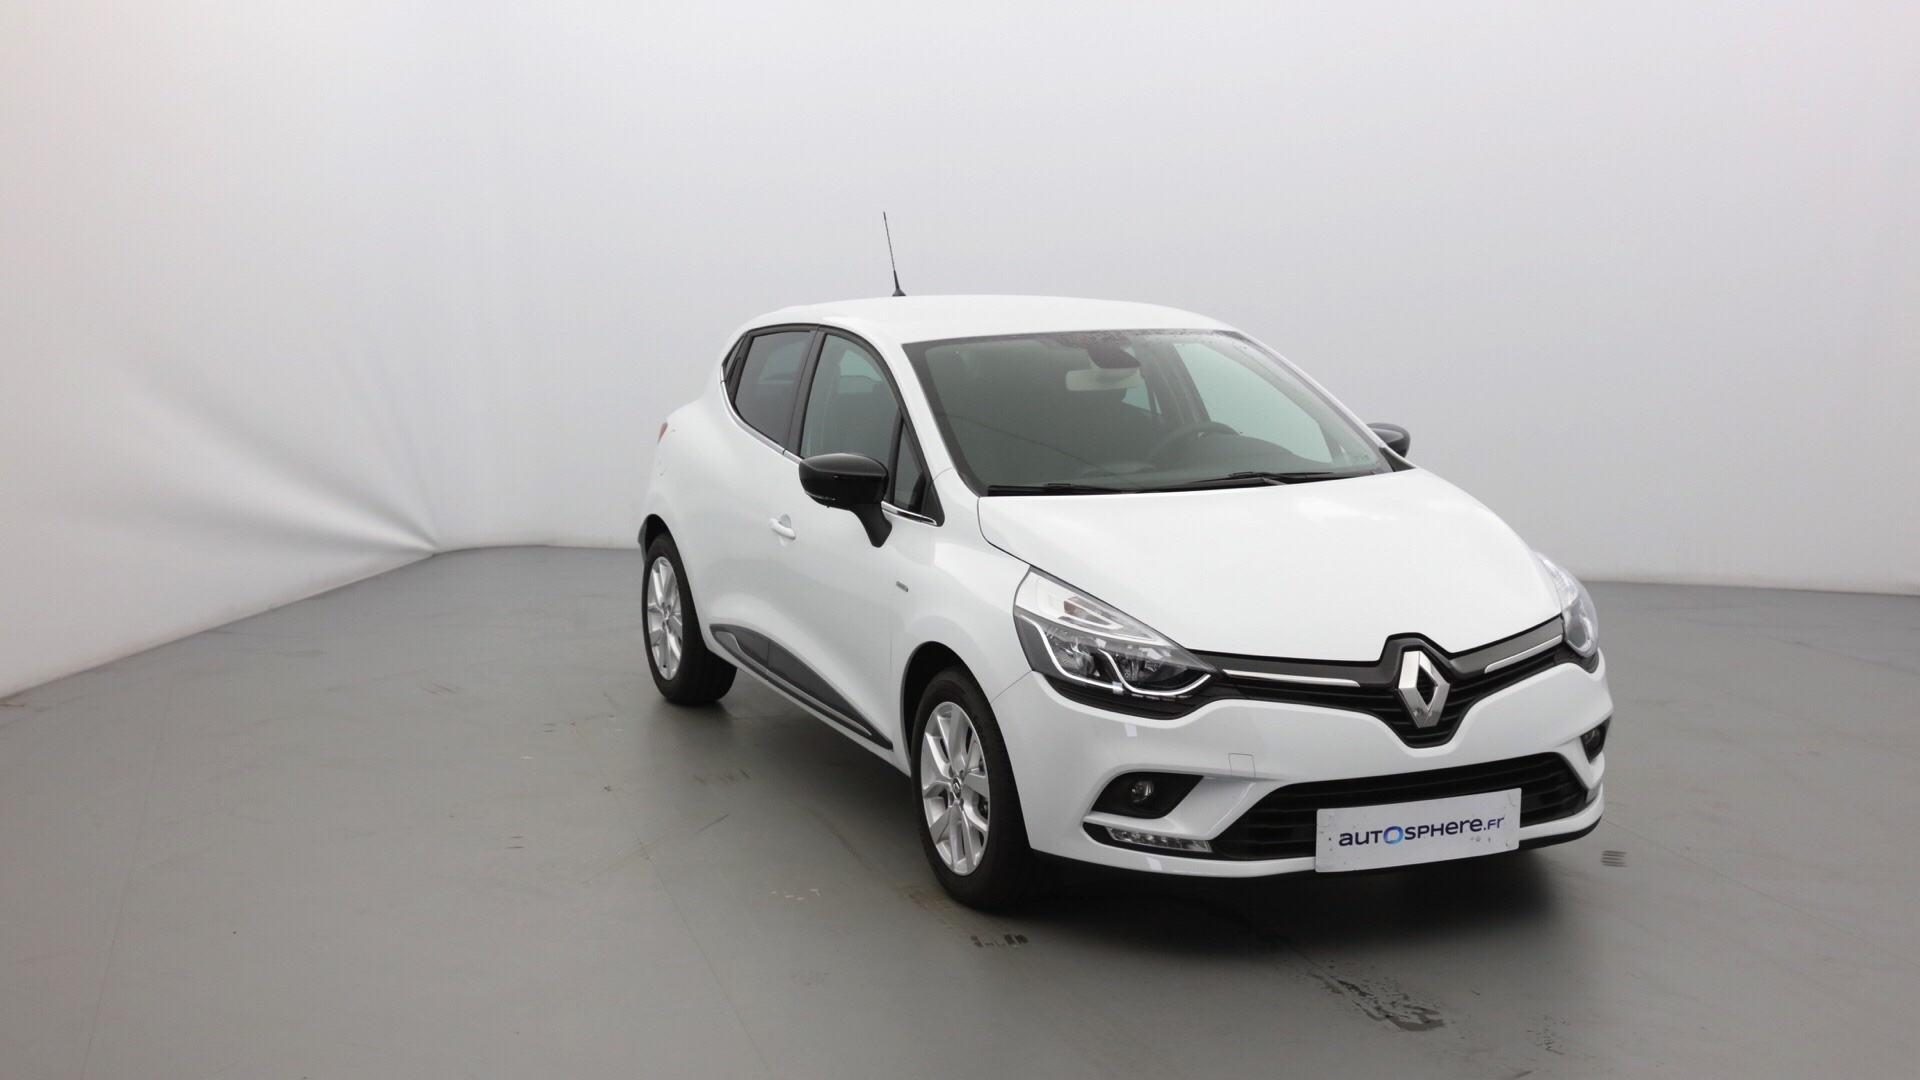 RENAULT CLIO 0.9 TCE 90CH ENERGY LIMITED 5P - Miniature 3